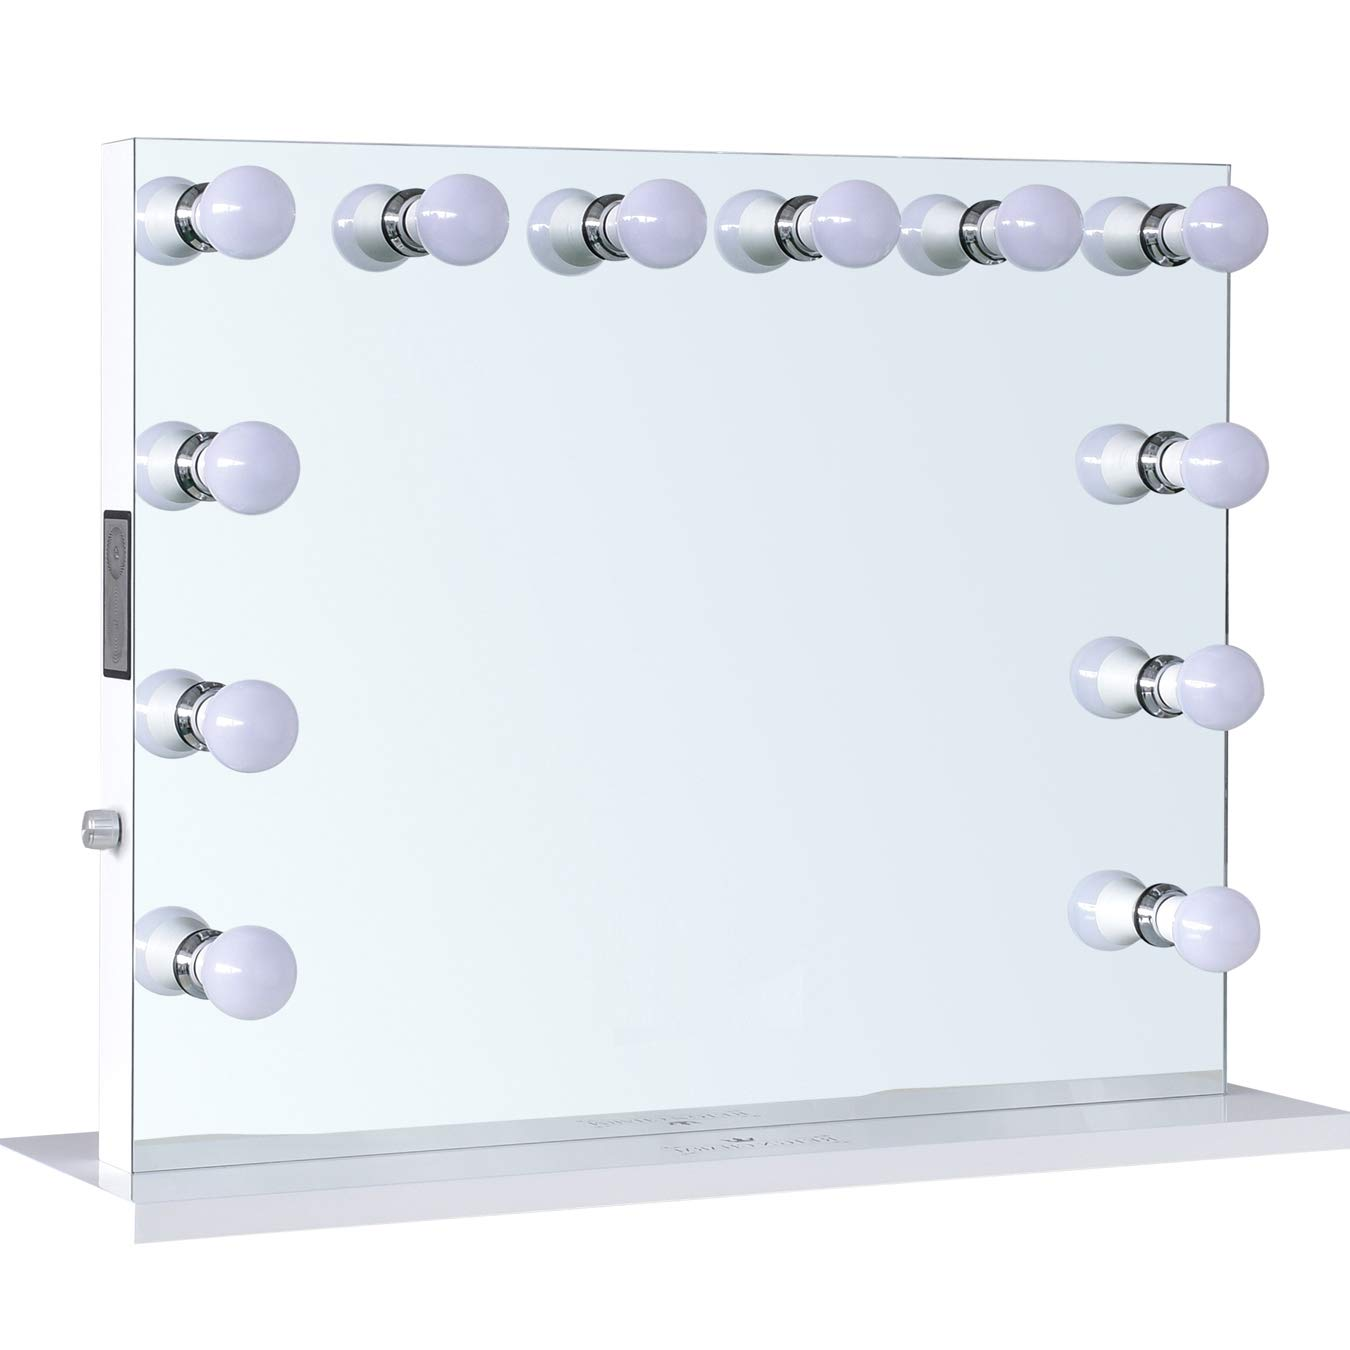 ReignCharm Hollywood Vanity Mirror Music Box 12 LED Lights Dual Outlets /& USB Bluetooth Speaker 32-inches x 27-inches